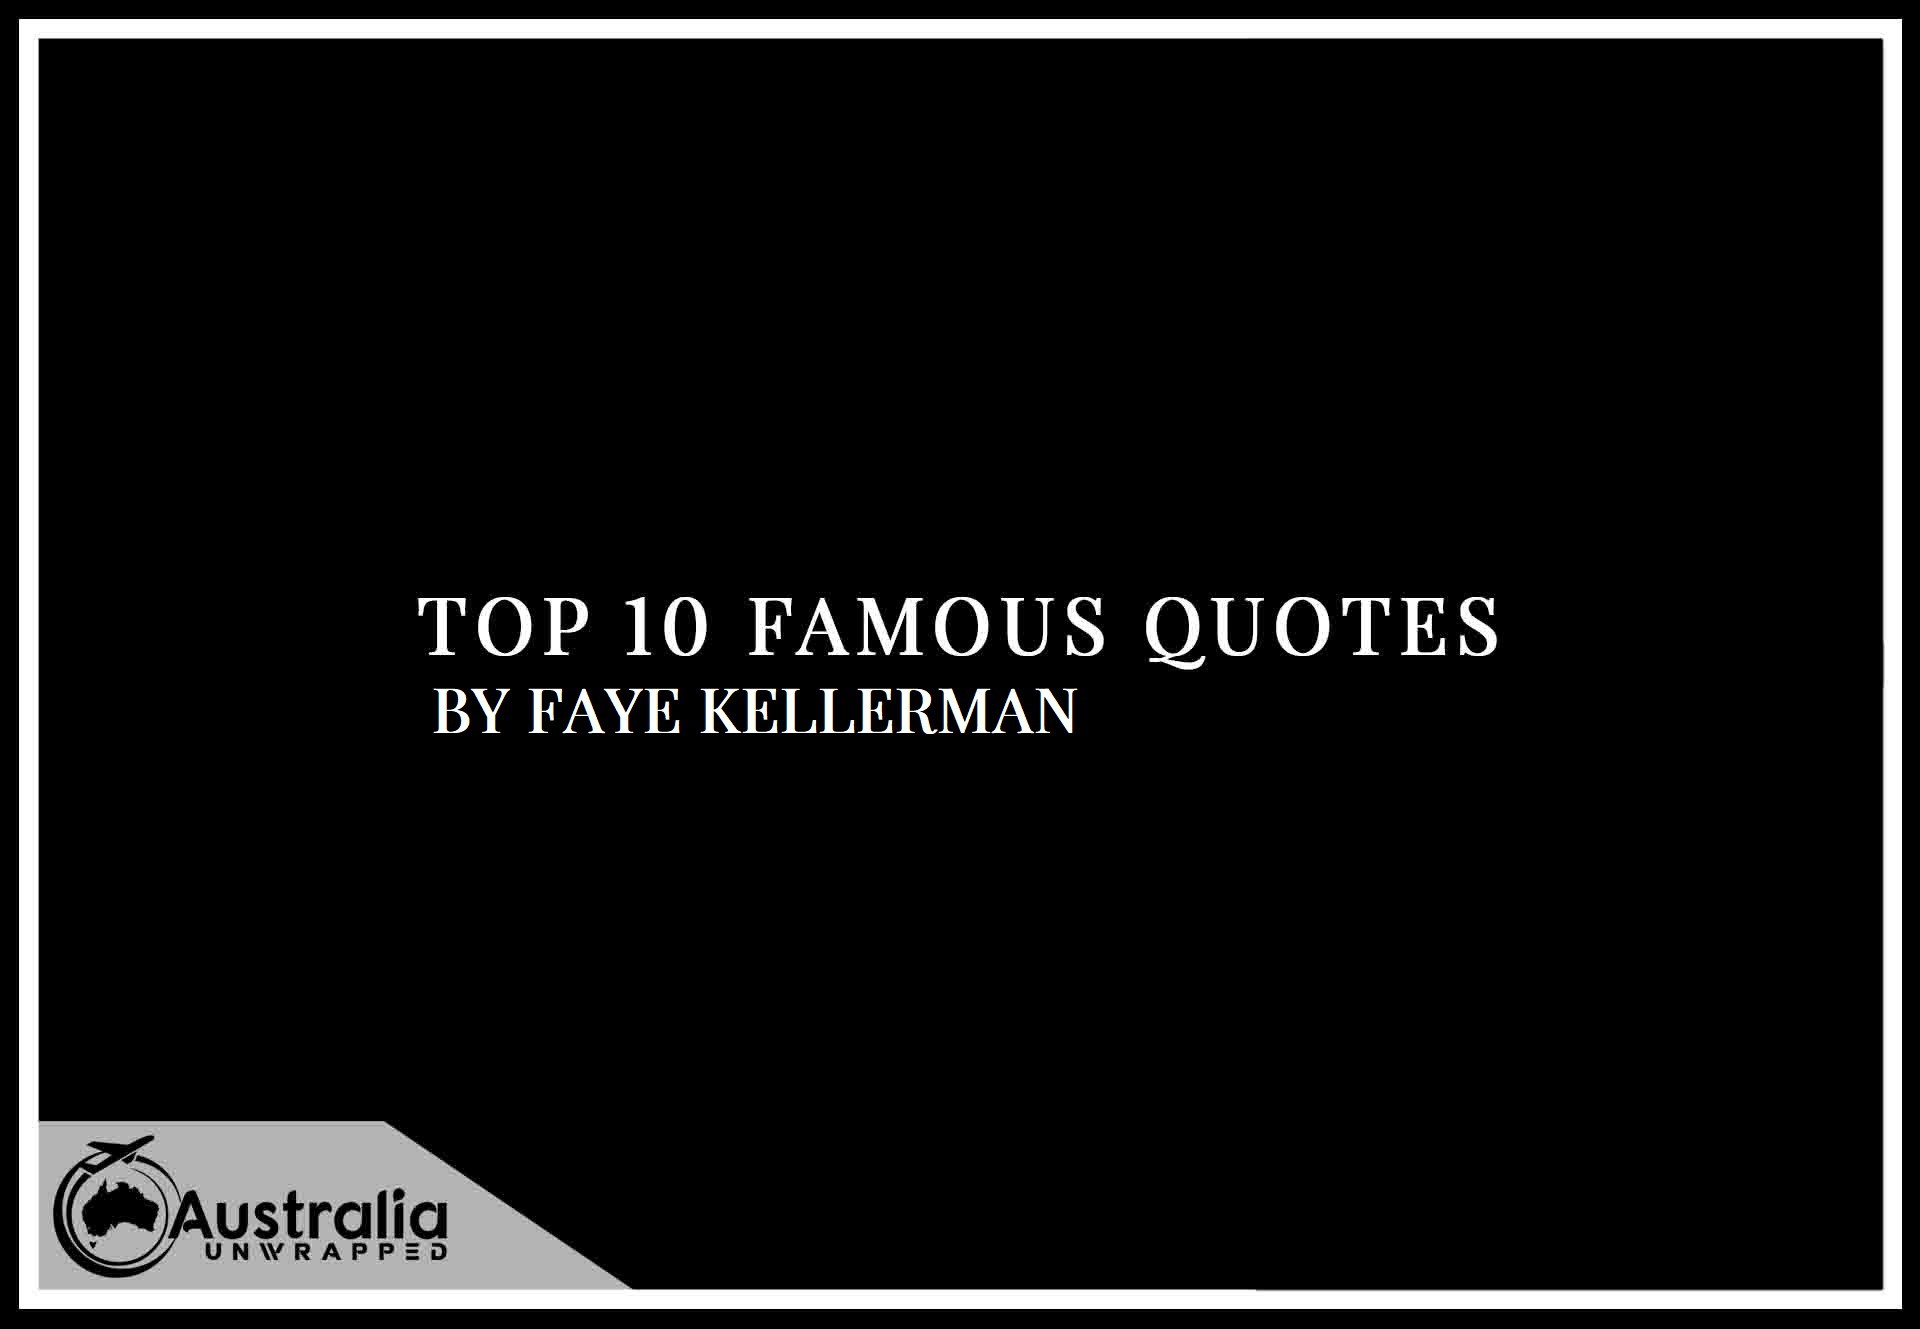 Top 10 Famous Quotes by Author Faye Kellerman